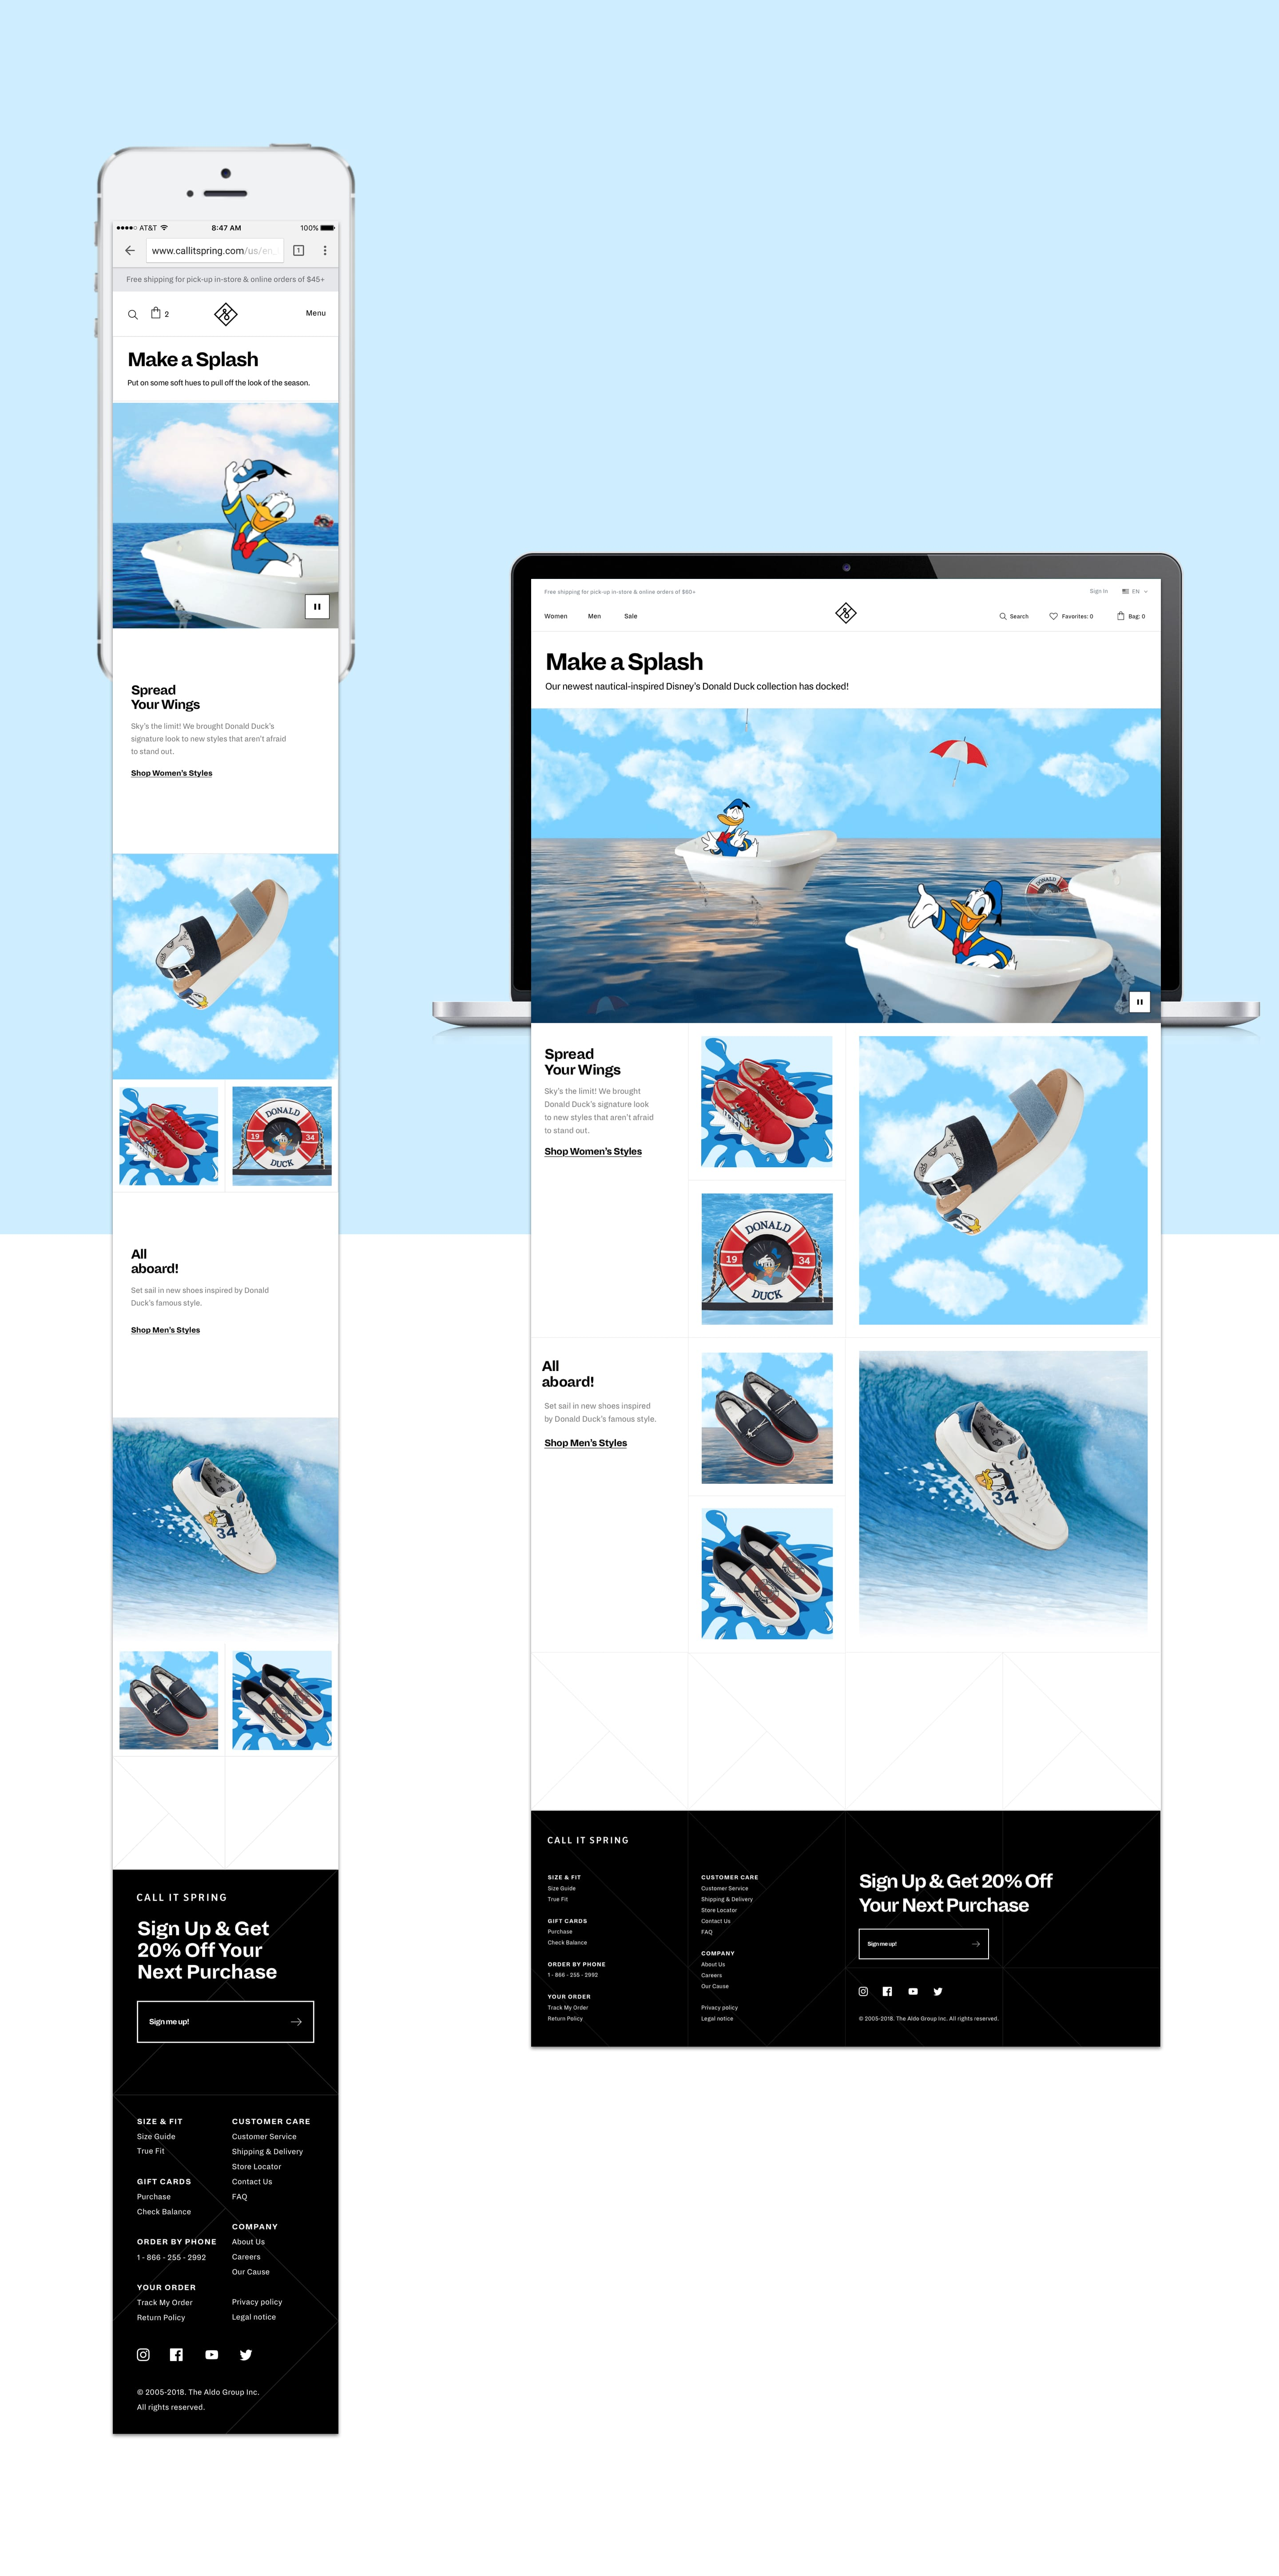 Screenshots of the desktop and mobile Donald Duck x Call it Spring landing pages